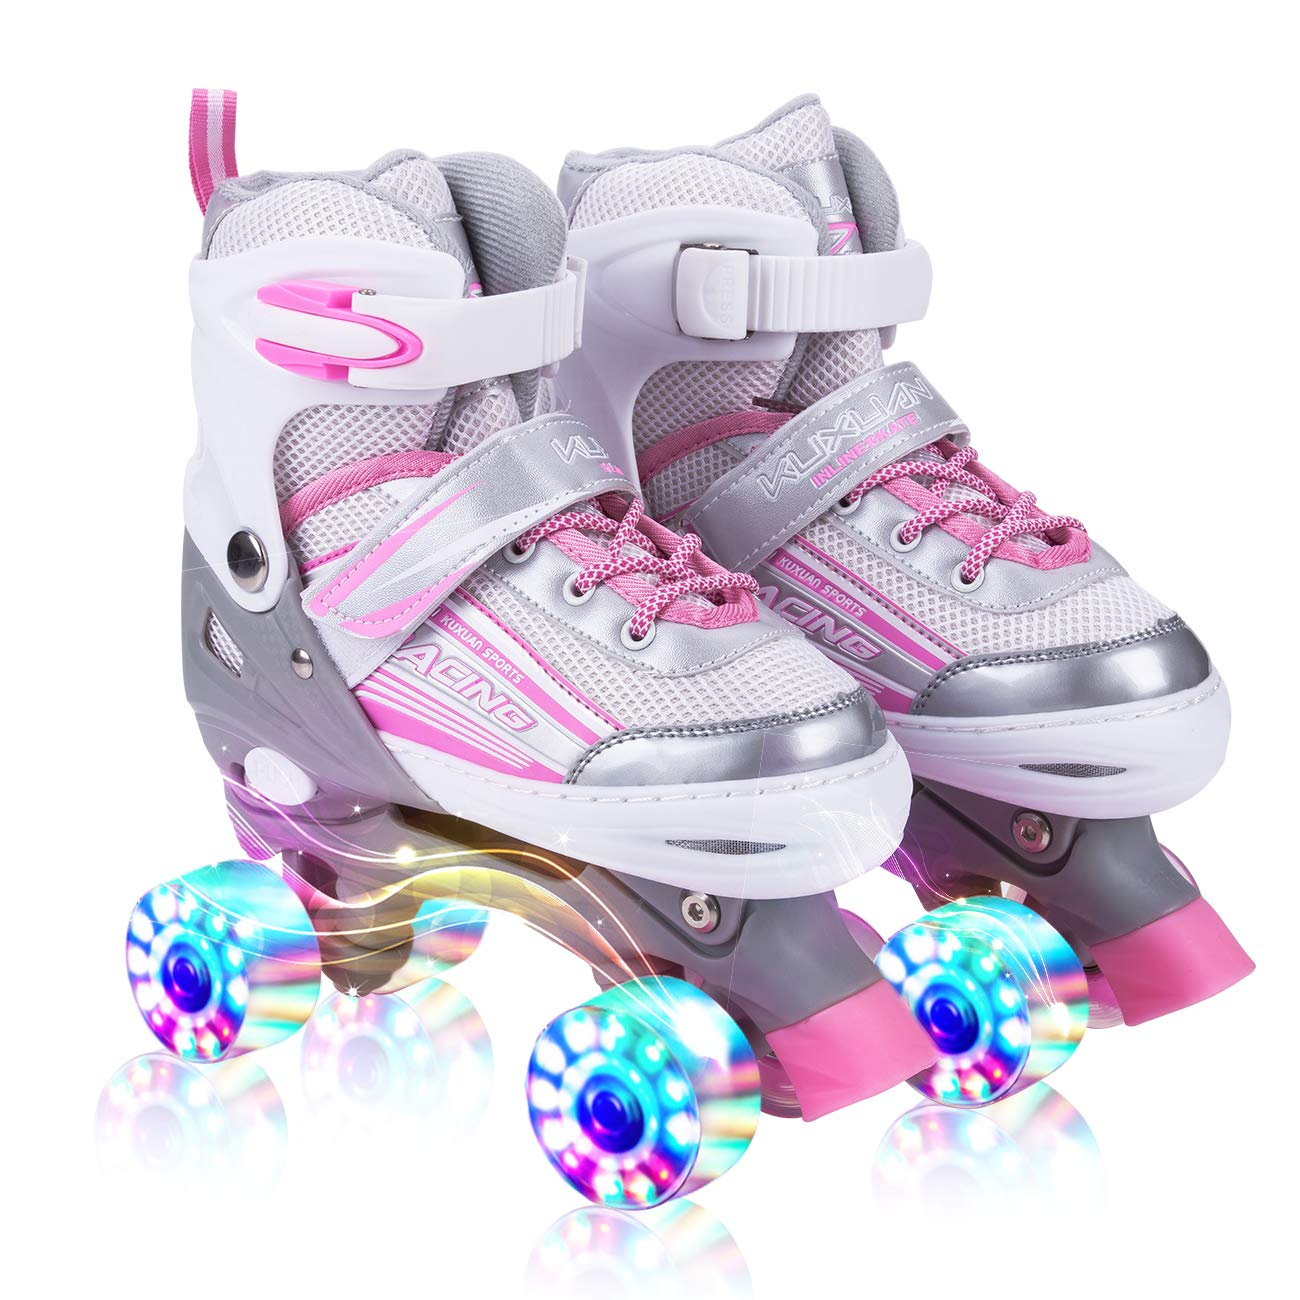 Kuxuan Saya Roller Skates Adjustable for Kids,with All Wheels Light up,Fun Illuminating for Girls and Ladies - Pink M by Kuxuan